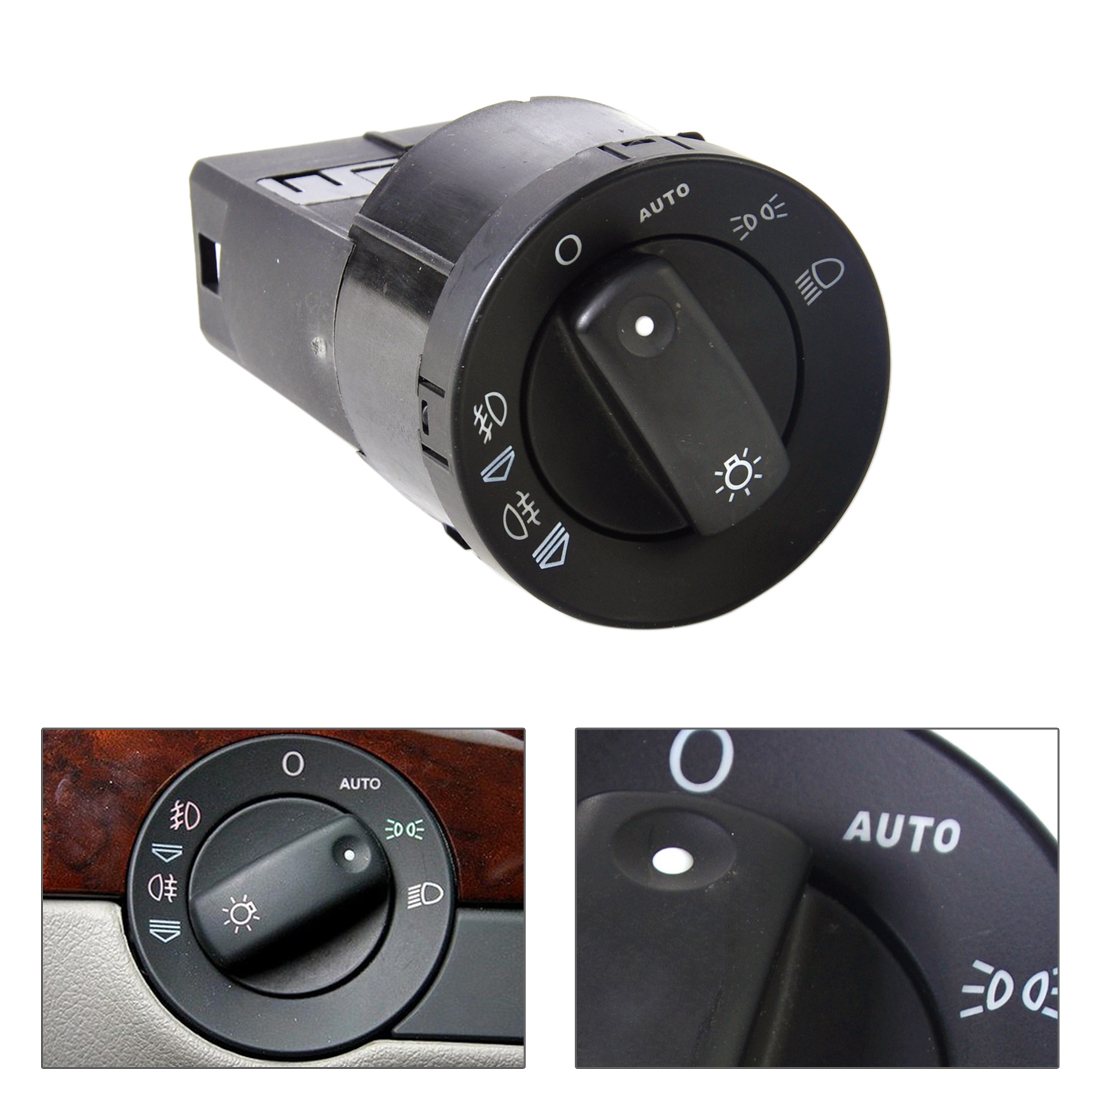 DWCX 8E0941531D AUTO Function Headlight Foglights Switch Control Audi A4 / S4 B6 / B7 2002 2003 2004 2005 2006 2007 2008